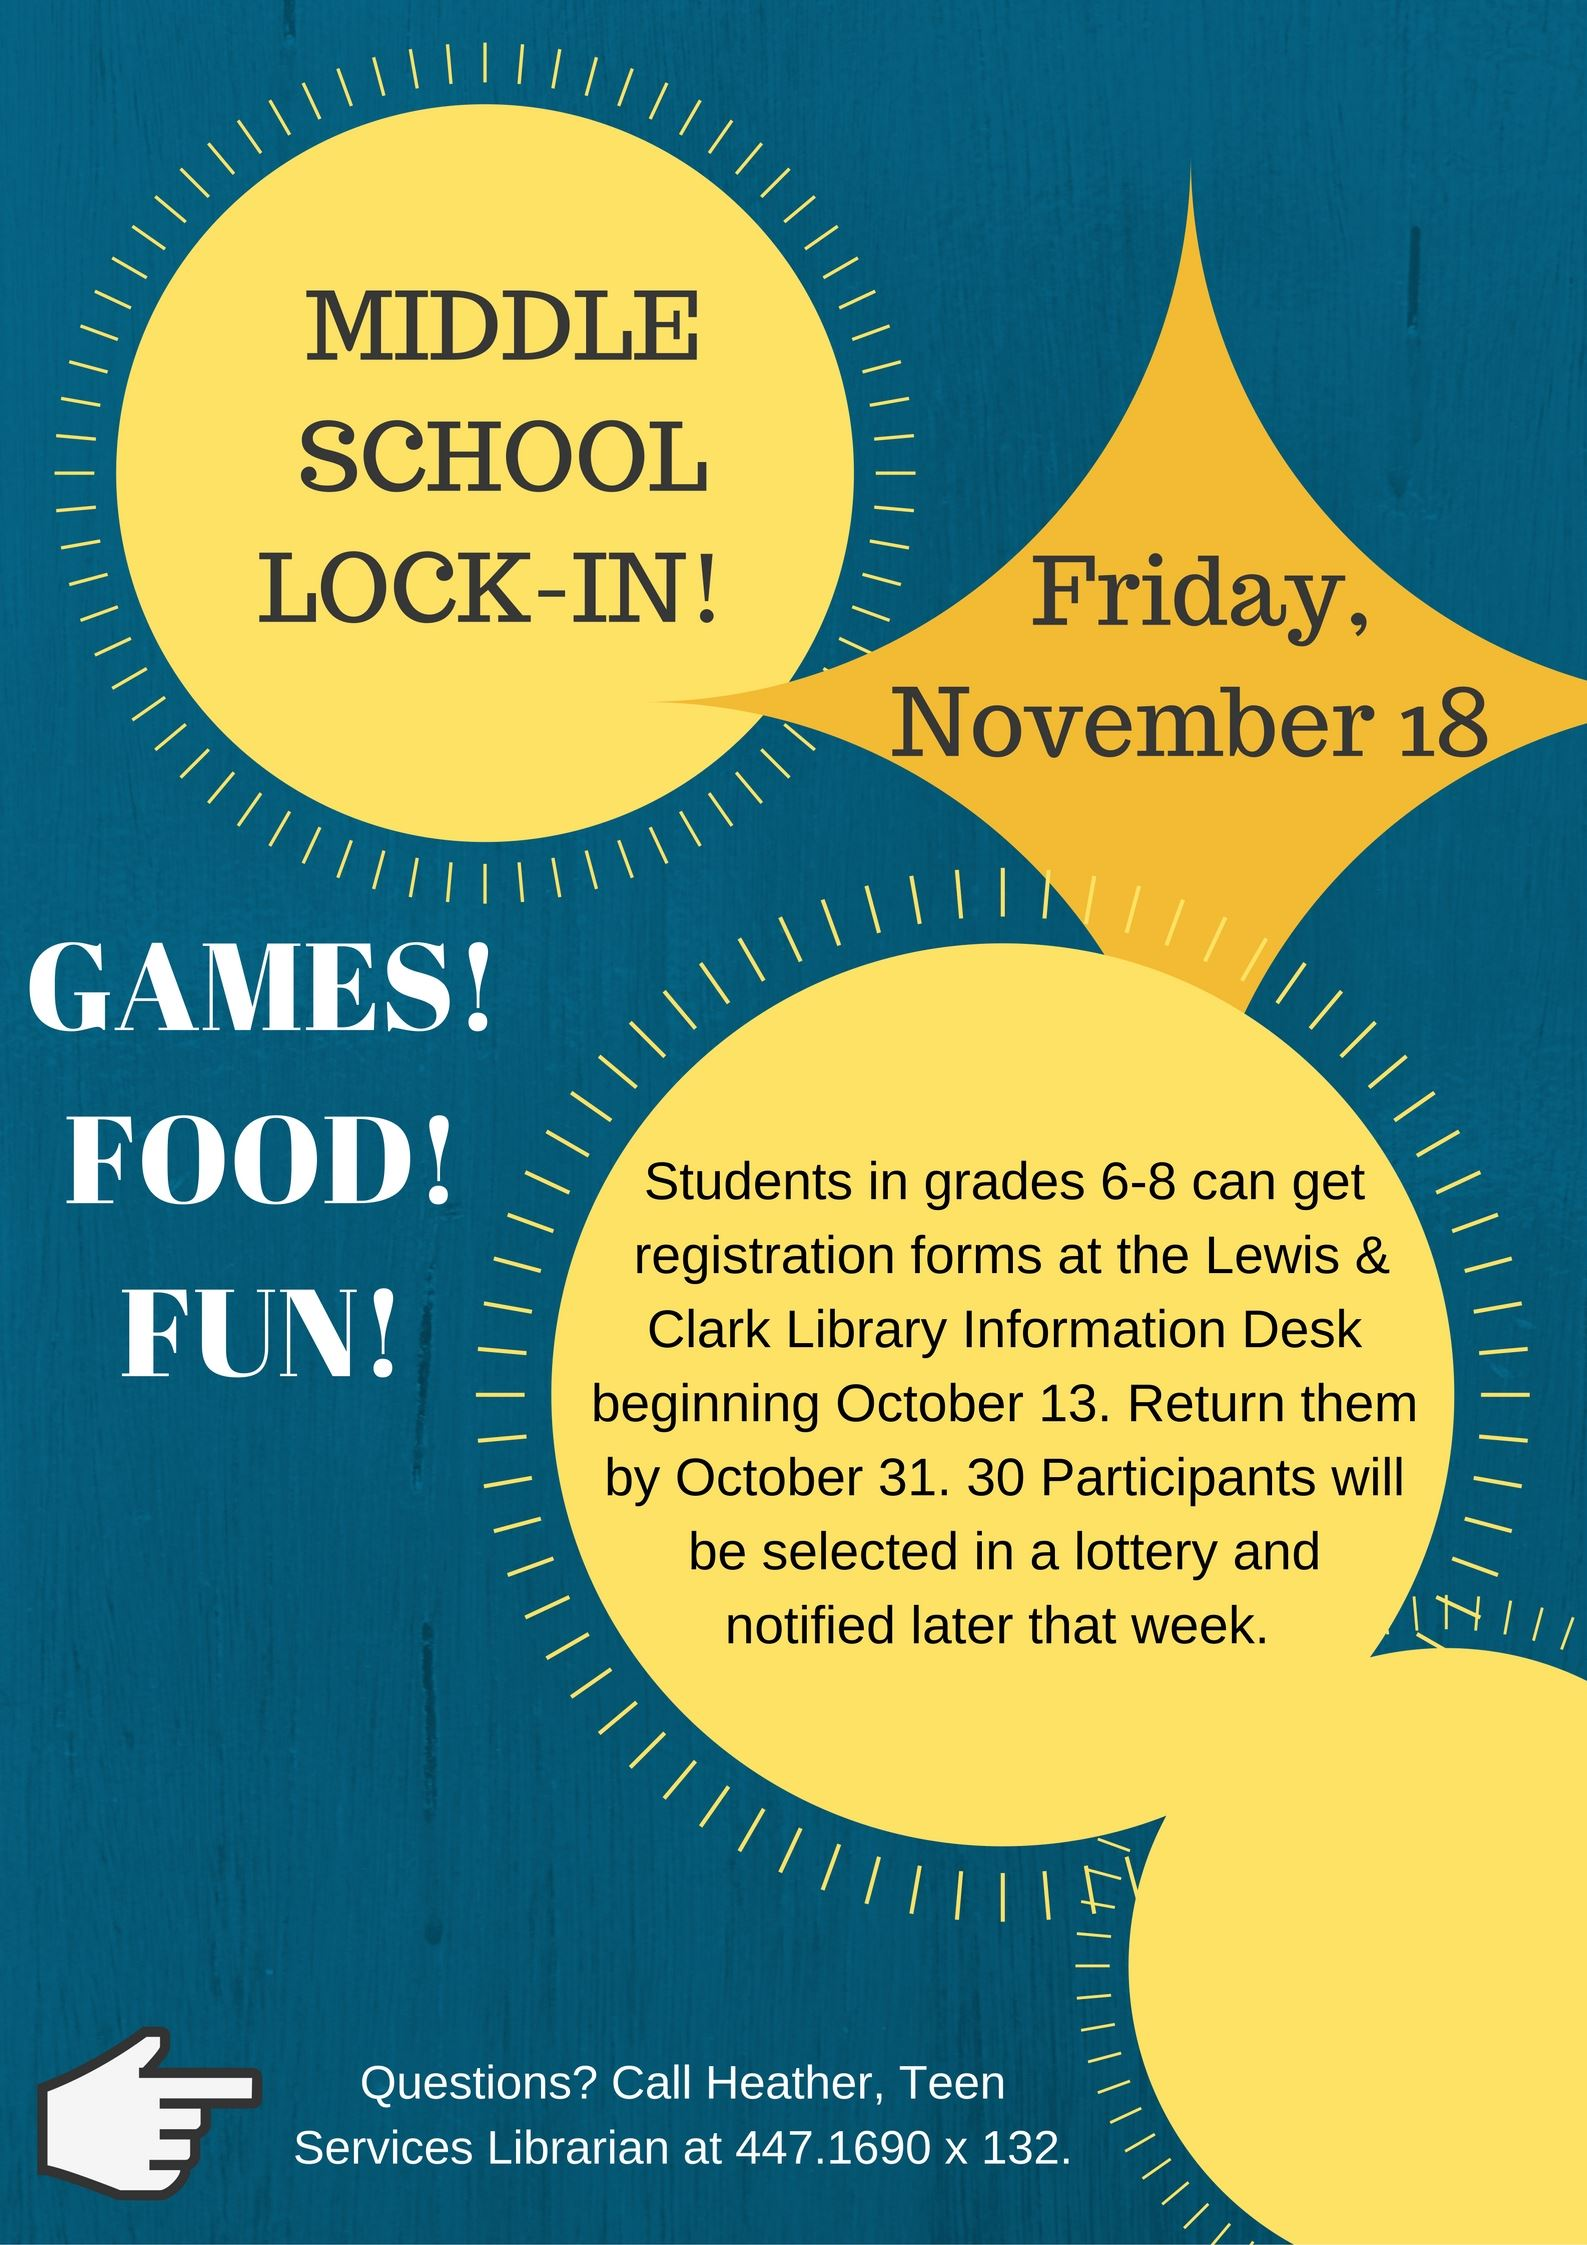 MIDDLE SCHOOL LOCK-IN!